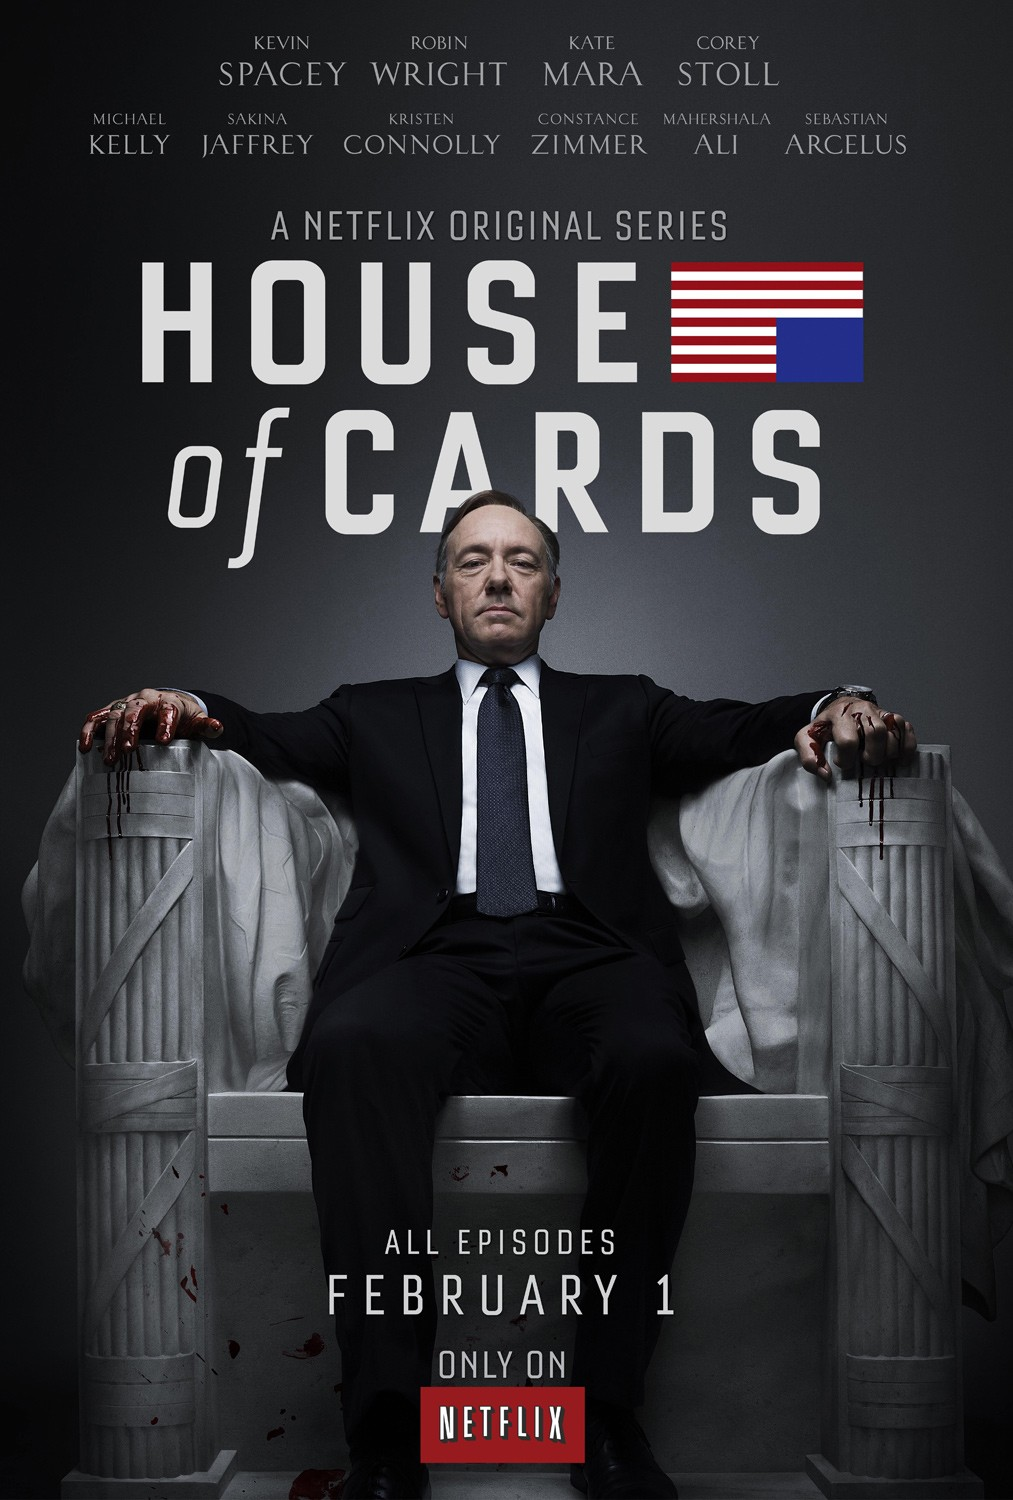 Netflix House of Cards poster